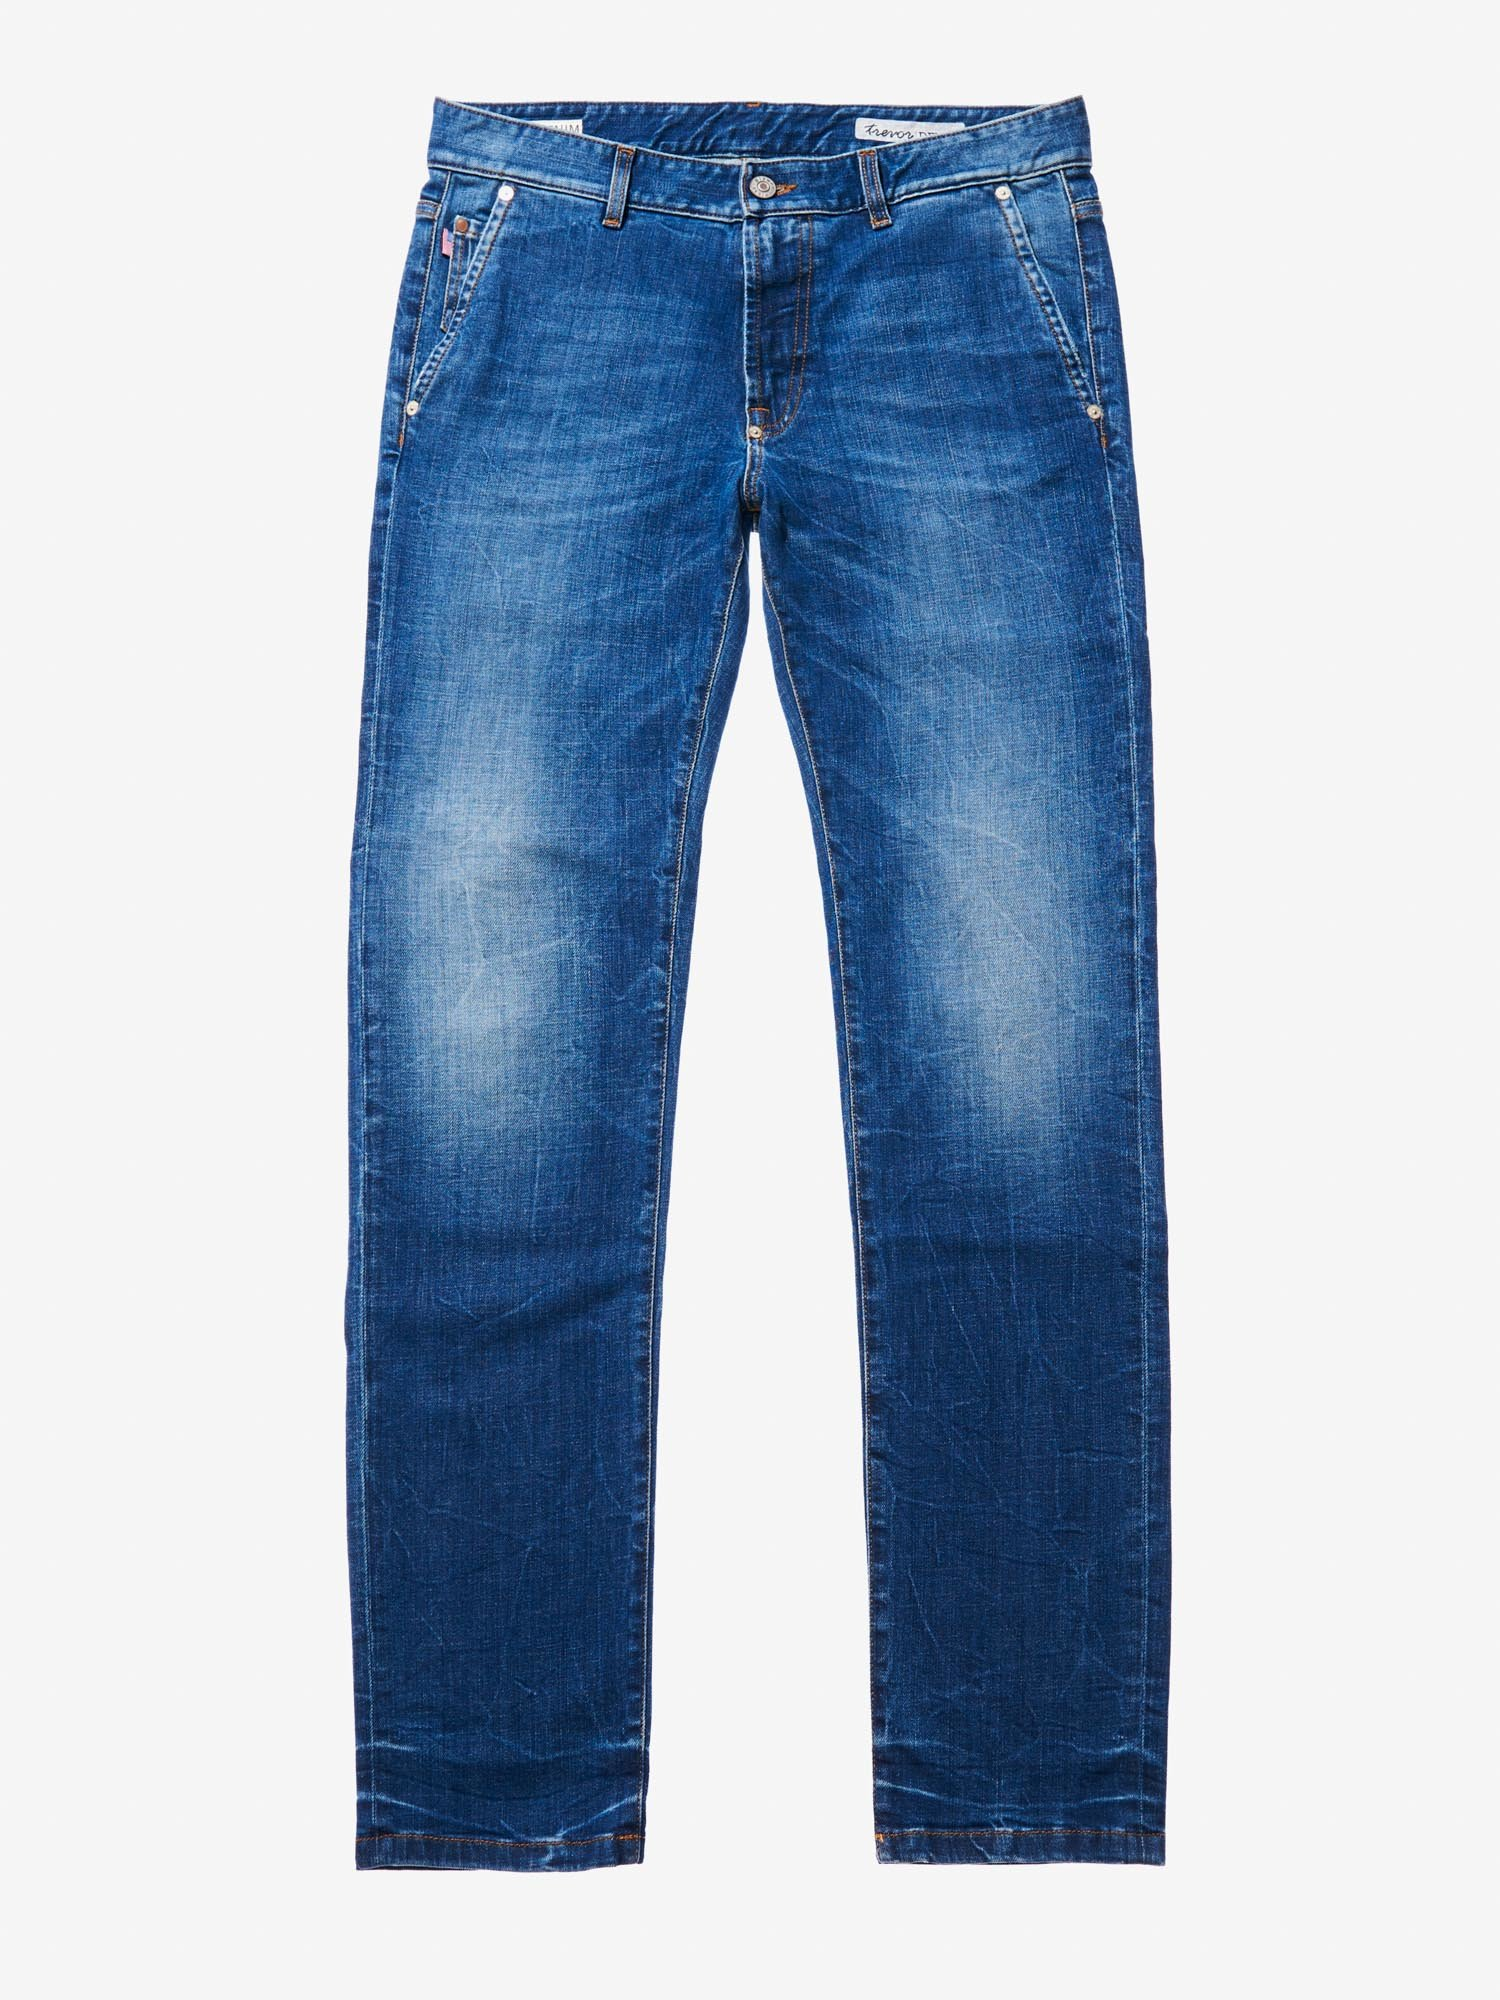 Blauer - DENIM PANTS - Denim Washing - Blauer